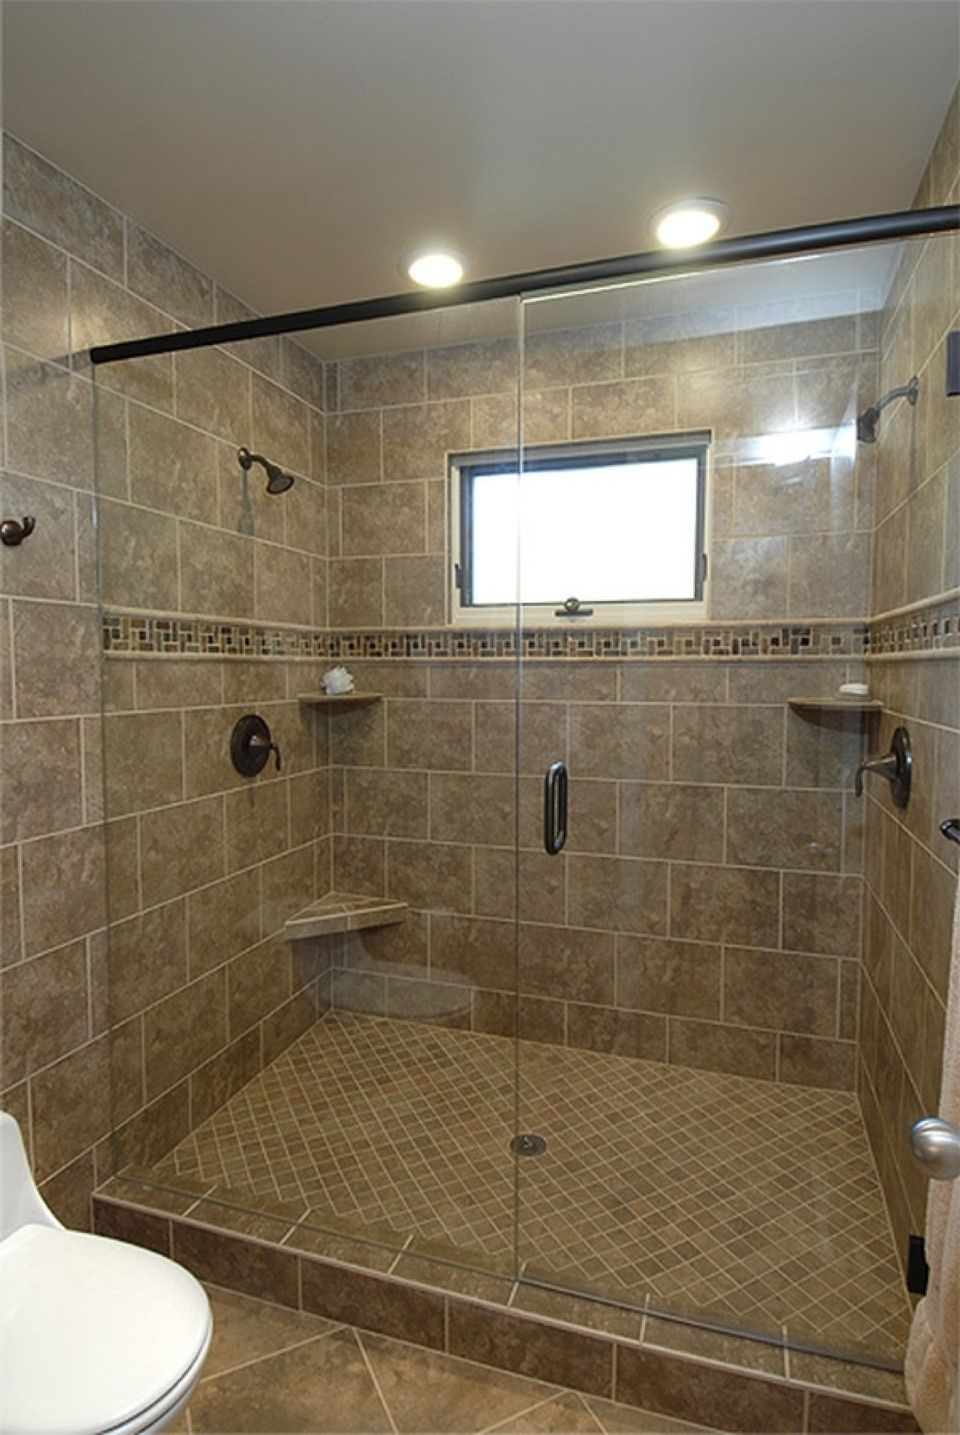 Showers with bullnose around window google search for Bathroom tile ideas